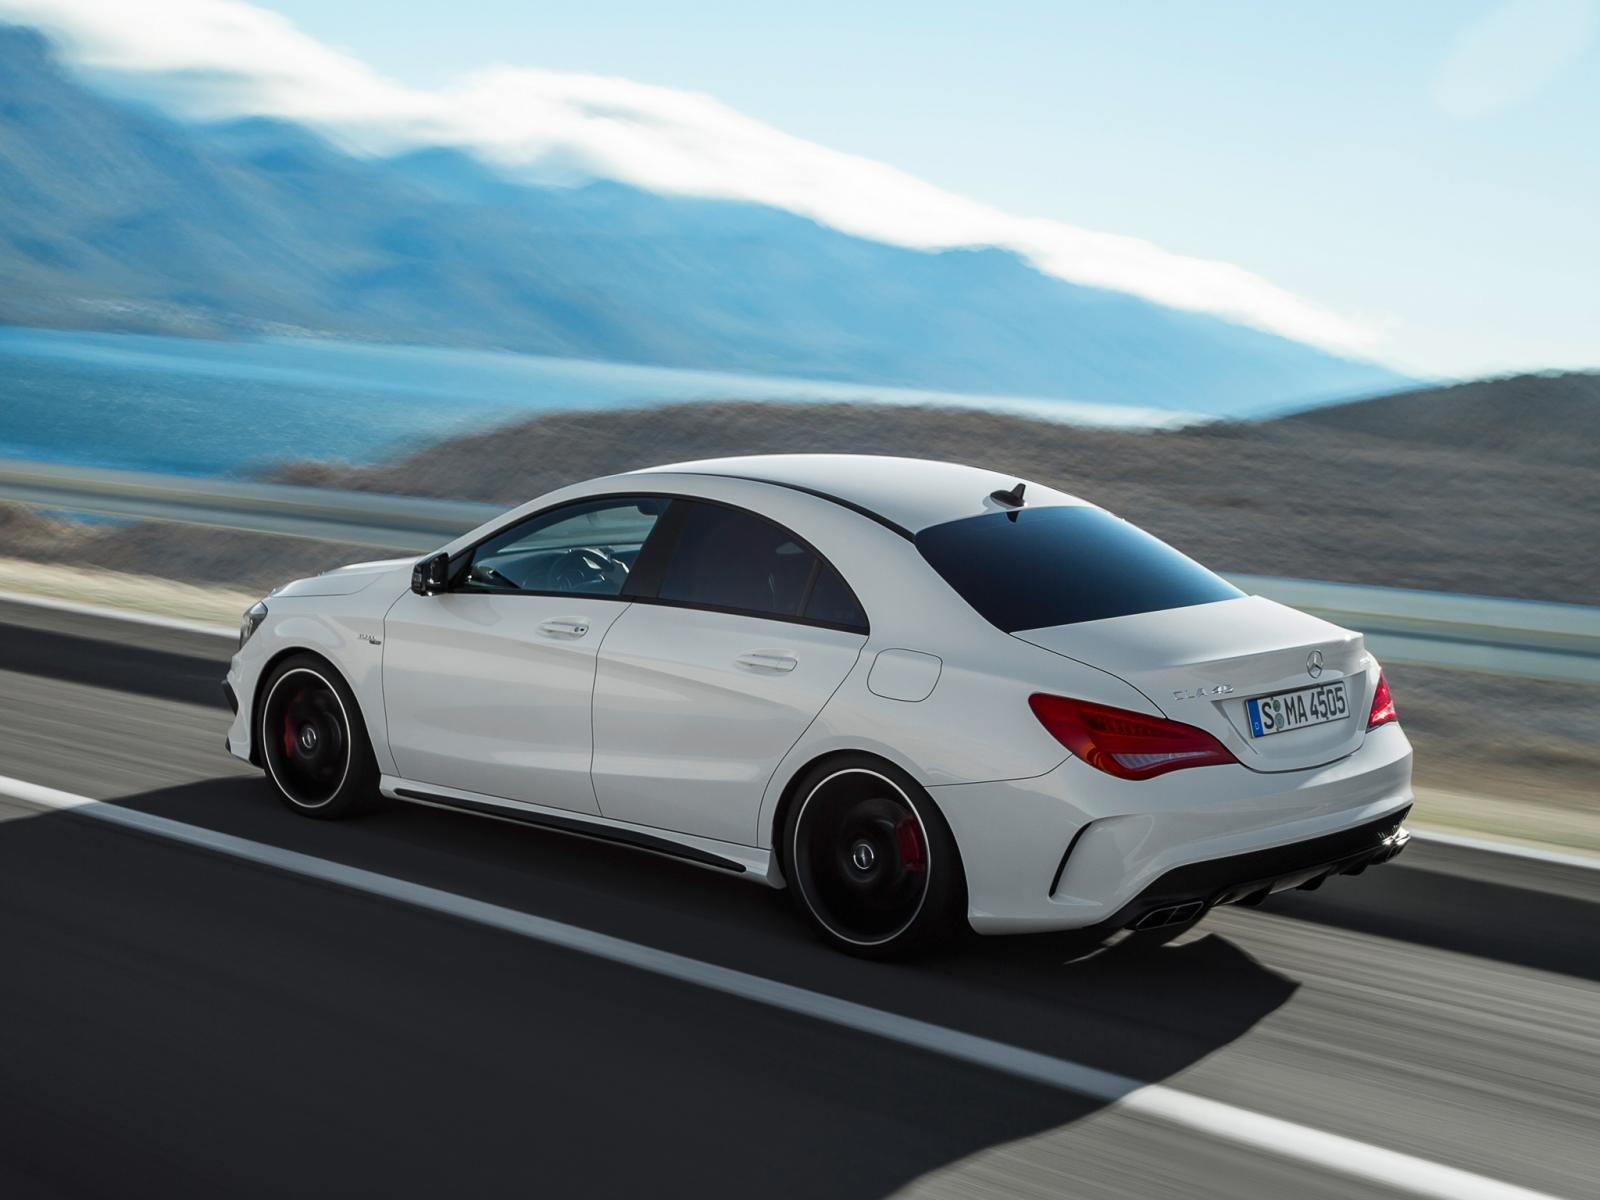 Mercedes benz cla 45 amg 9 for Benz mercedes cla